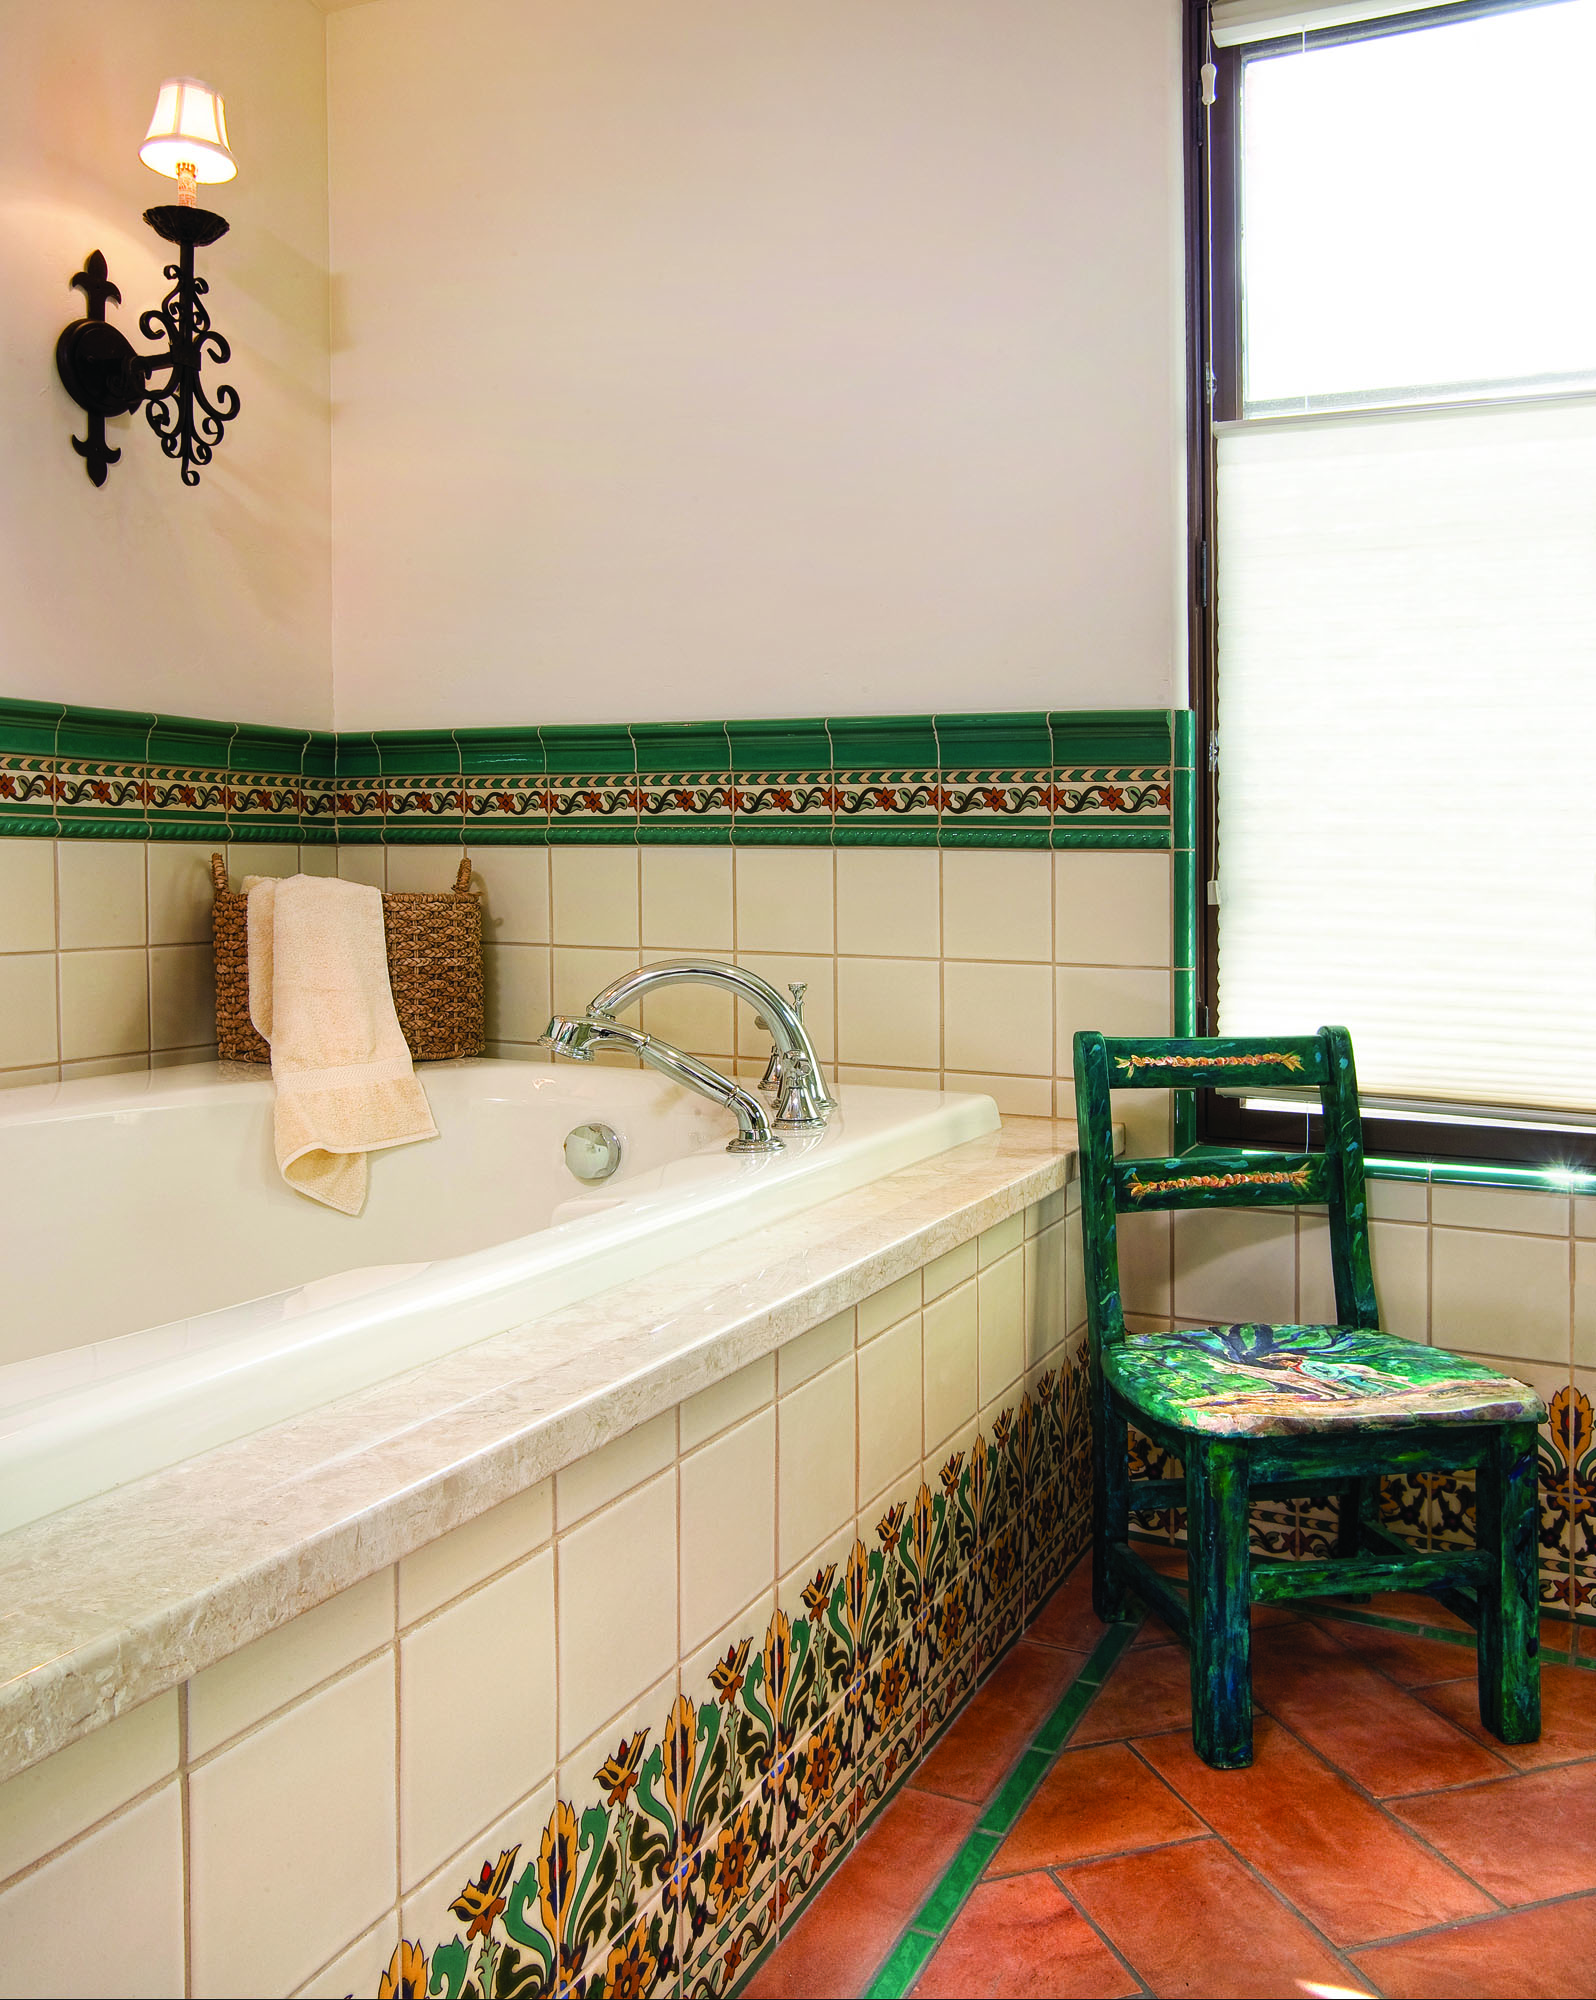 In the master bath, located in space that used to be the master bedroom, both the green backsplash and cap tiles, and the exotic design at the base of walls, are contemporary reproductions of California tile.